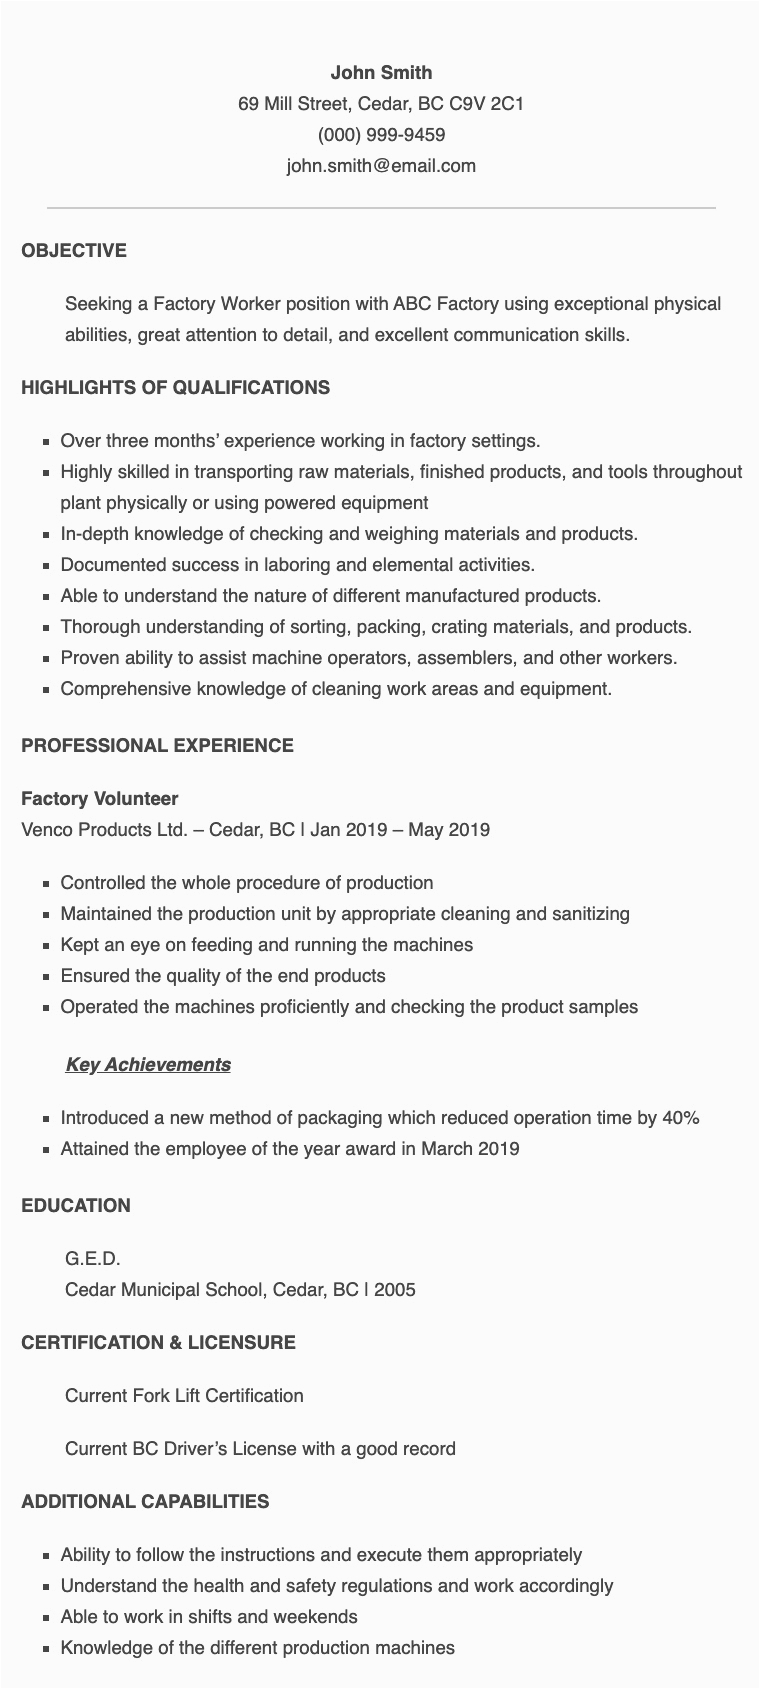 Sample Resume for Factory Worker Philippines Resume Samples for Factory Worker Applicant In the Philippines